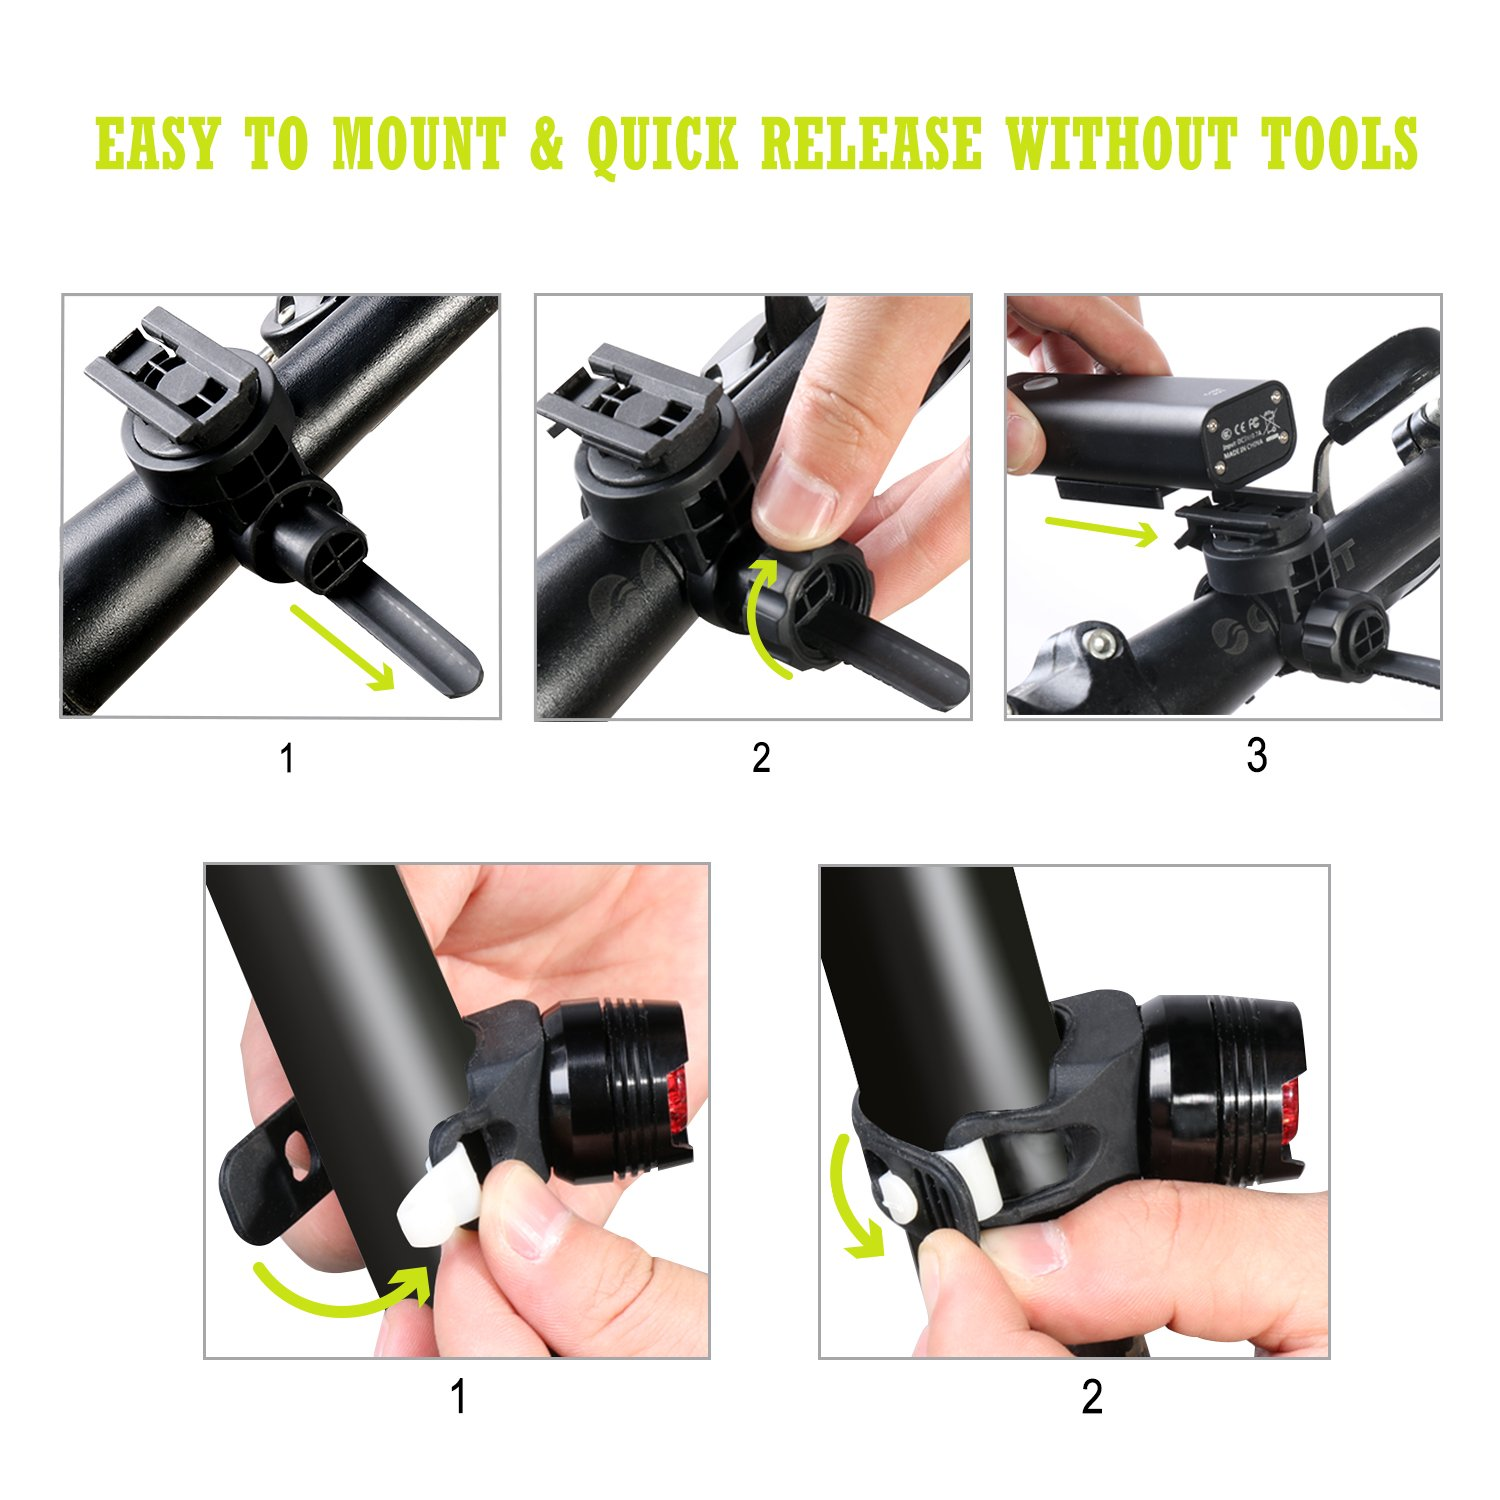 Cycloving Super Bright LED Bike Lights Cycling Water Resistant Bicycle Headlight and Tail Light